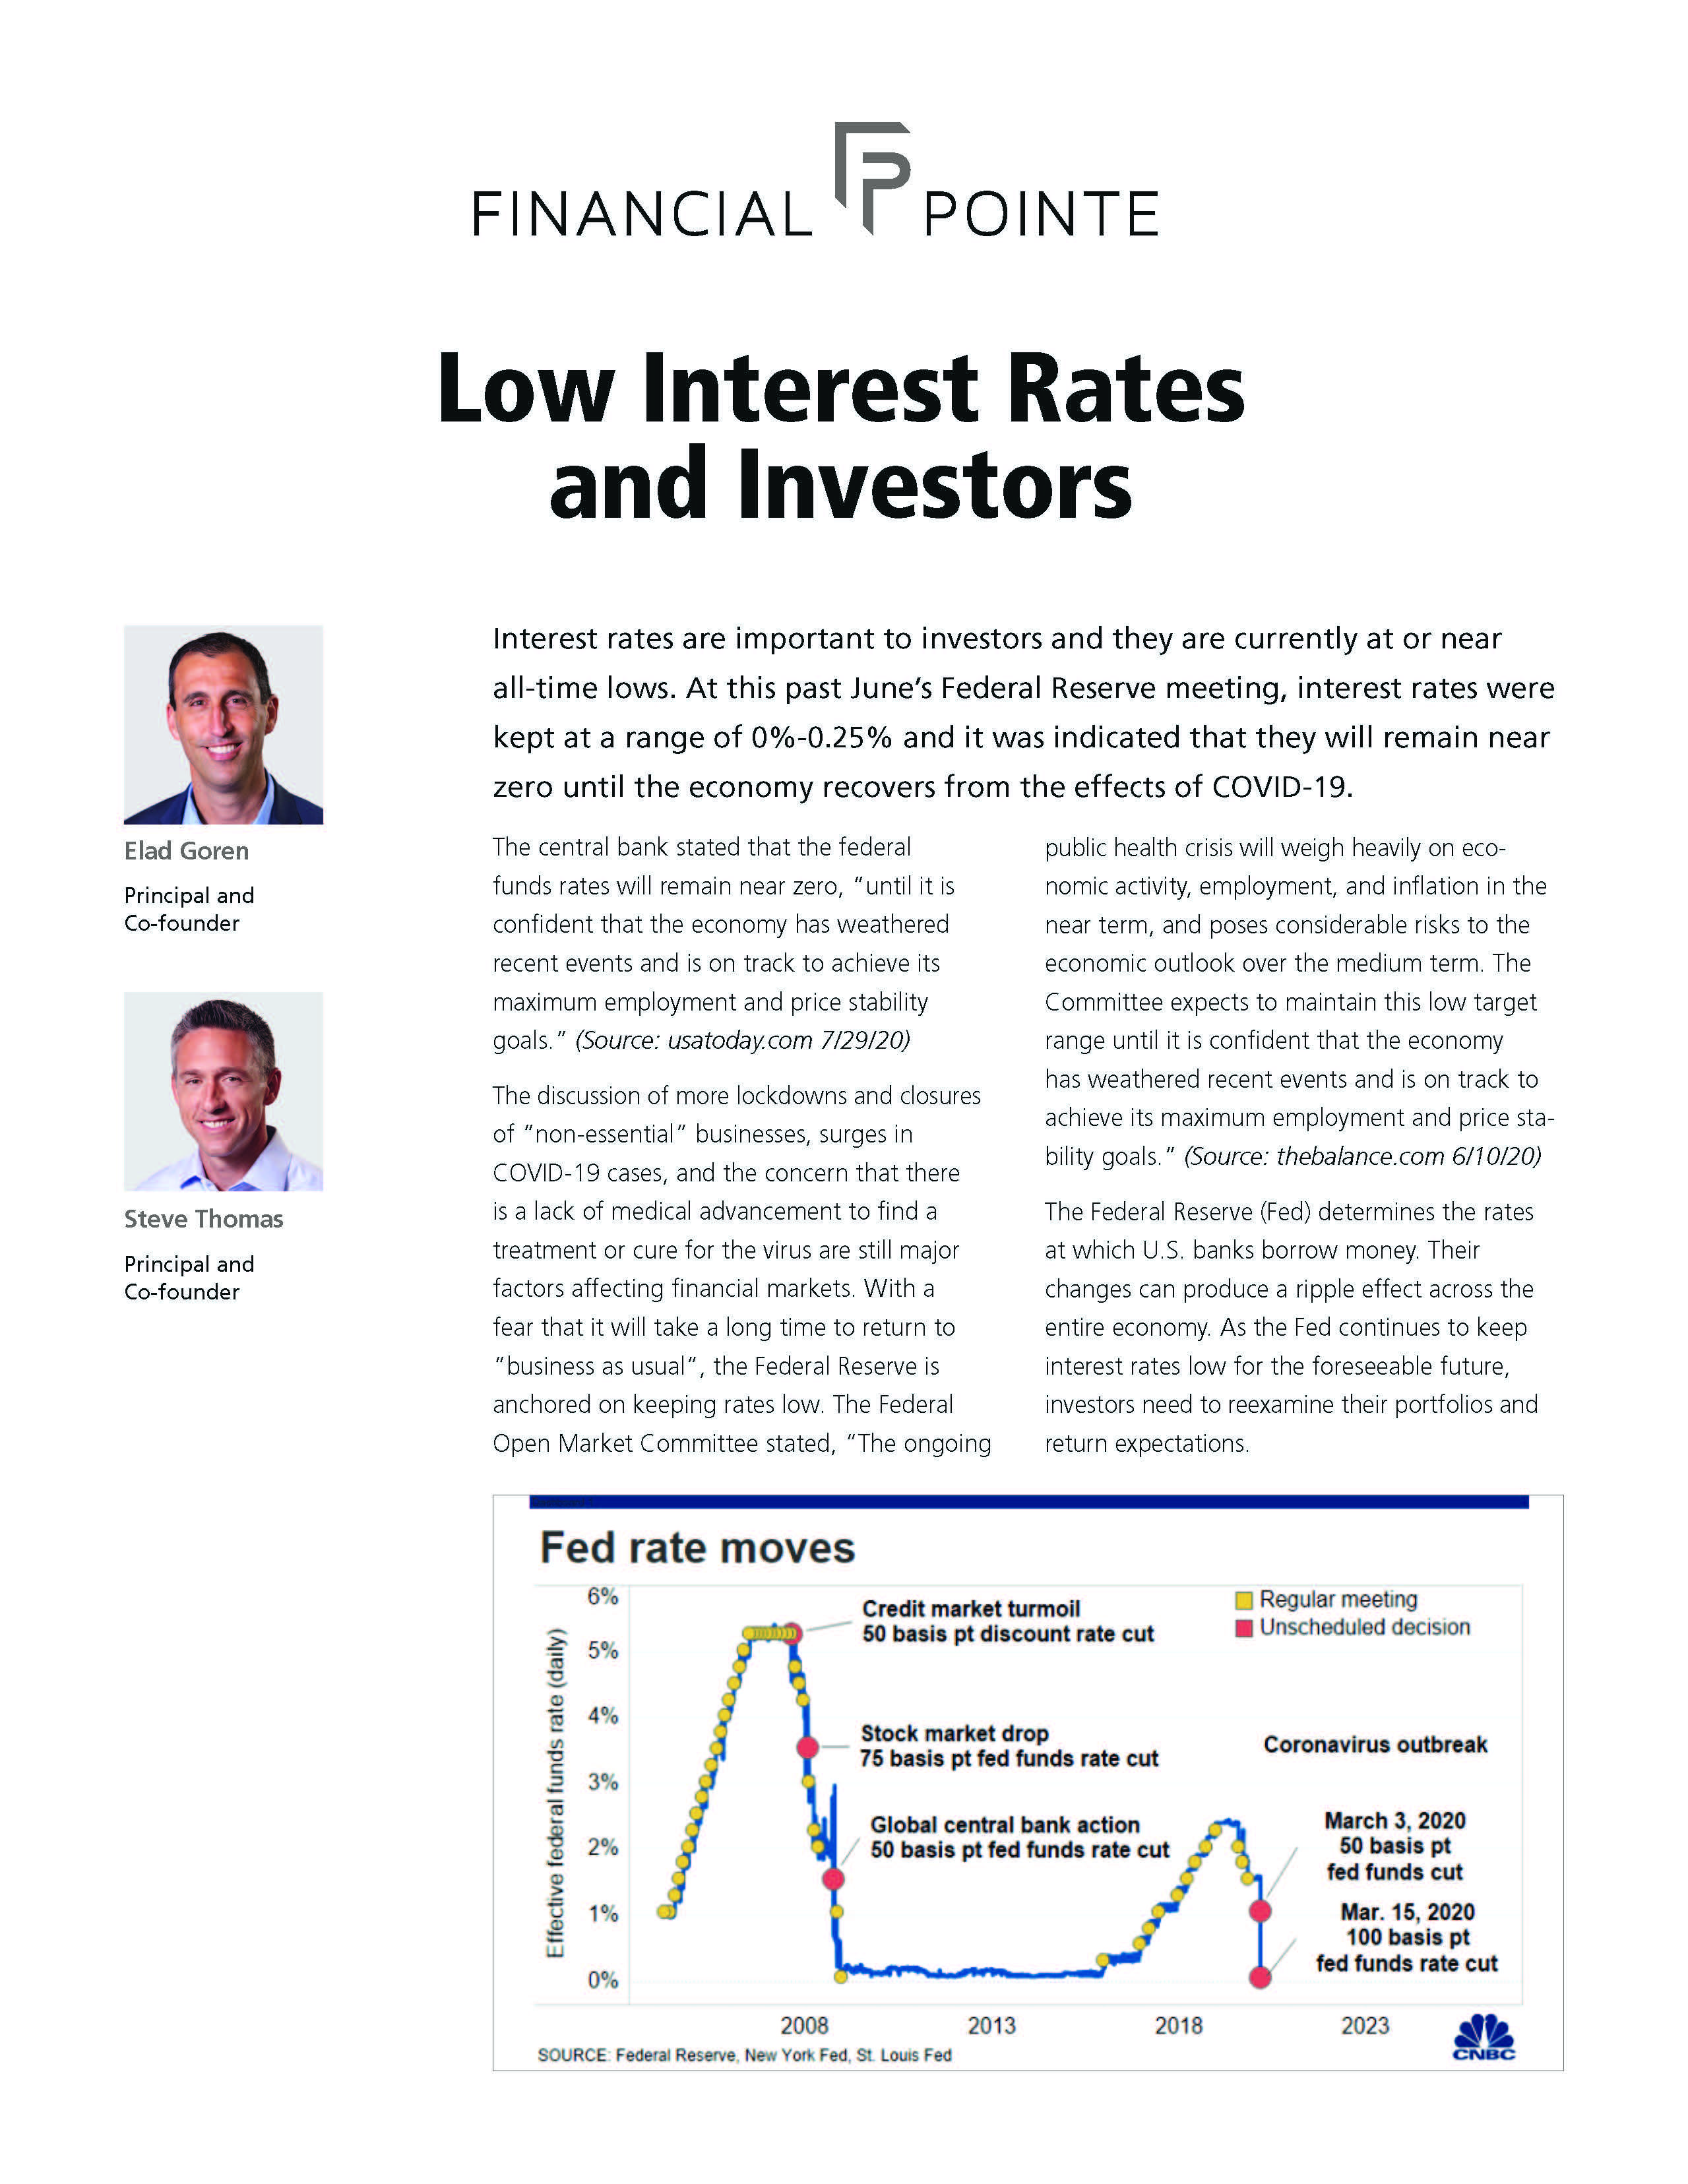 Low Interest Rates and Investors Thumbnail